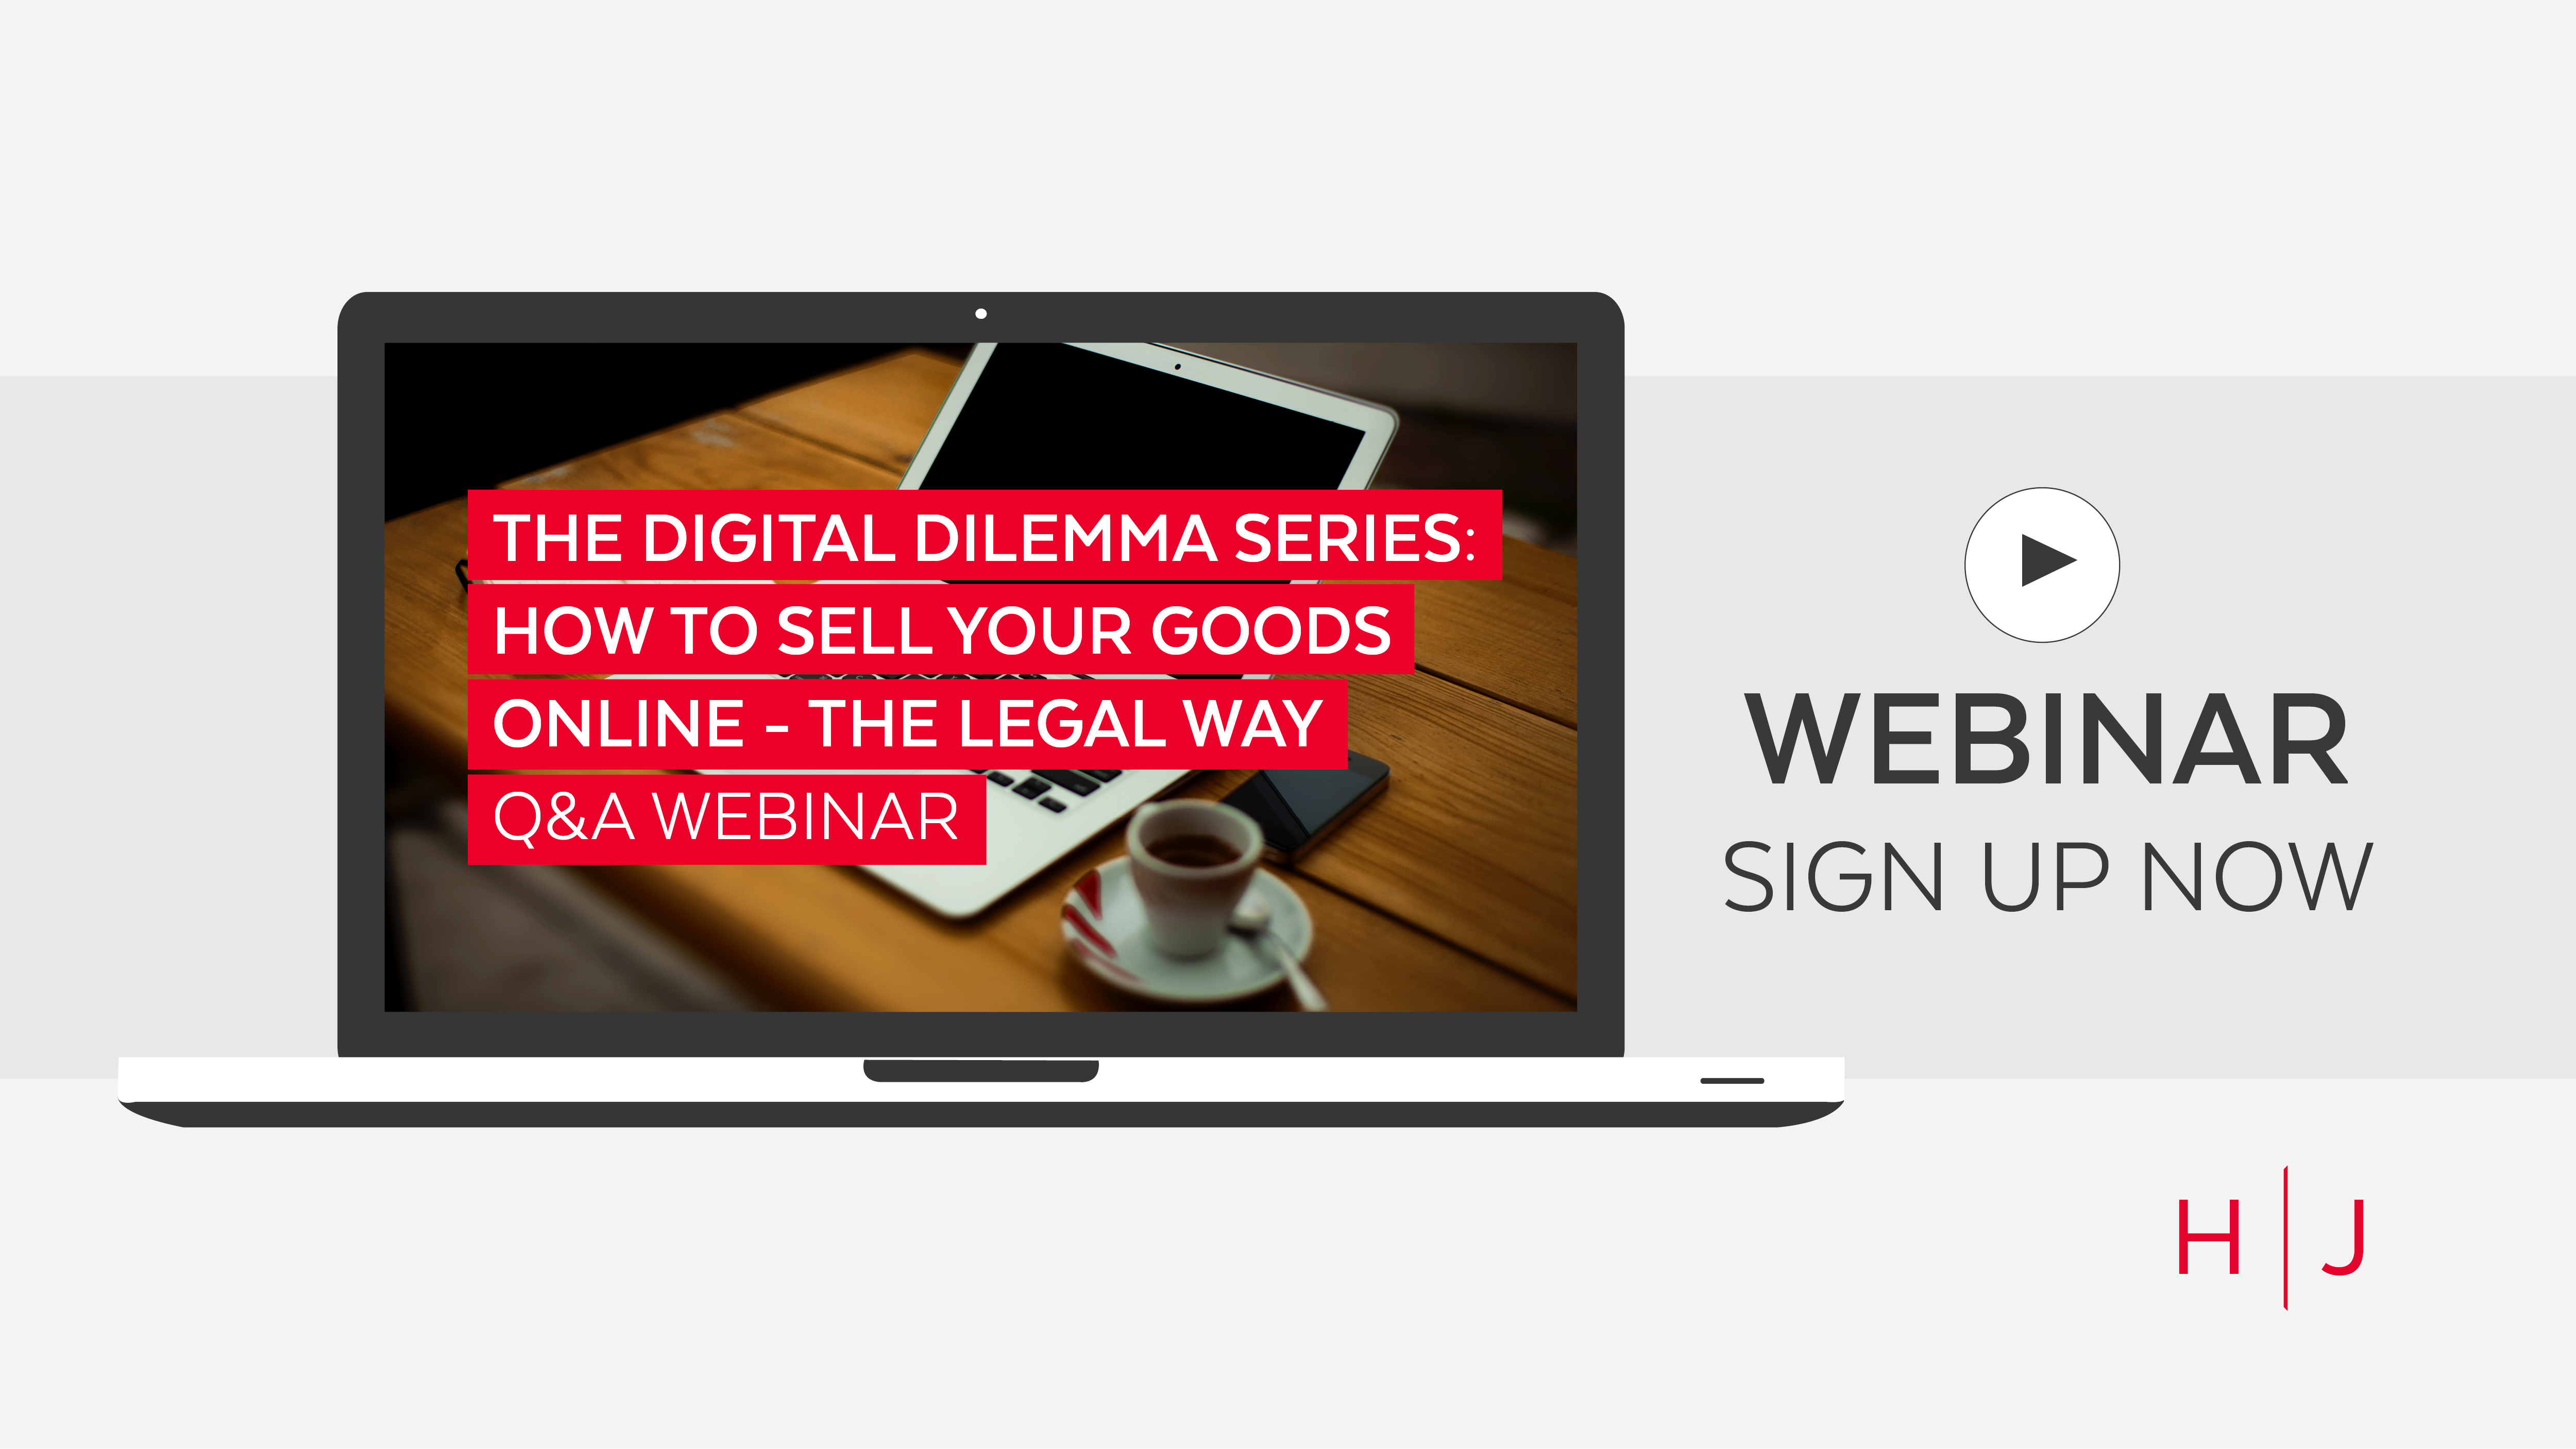 The Digital Dilemma Series: How To Sell Your Goods Online – The Legal Way - Live Q&A Webinar - sign up now | Hugh James